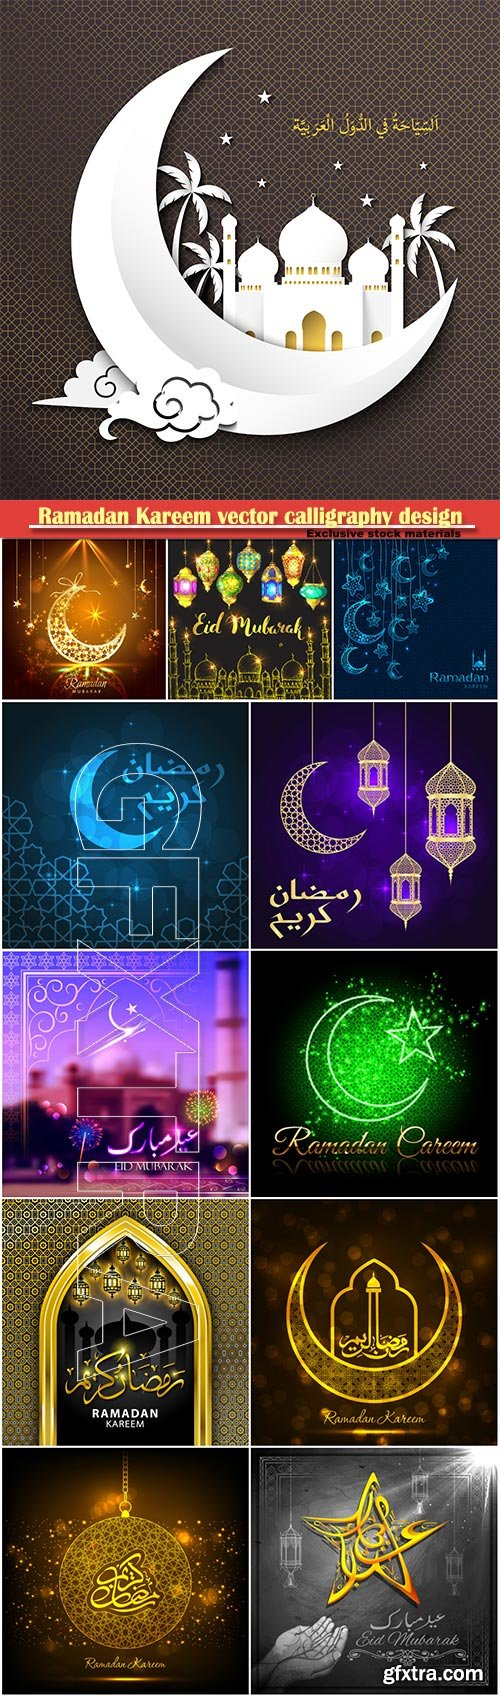 Ramadan Kareem vector calligraphy design with decorative floral pattern, mosque silhouette, crescent and glittering islamic background # 20